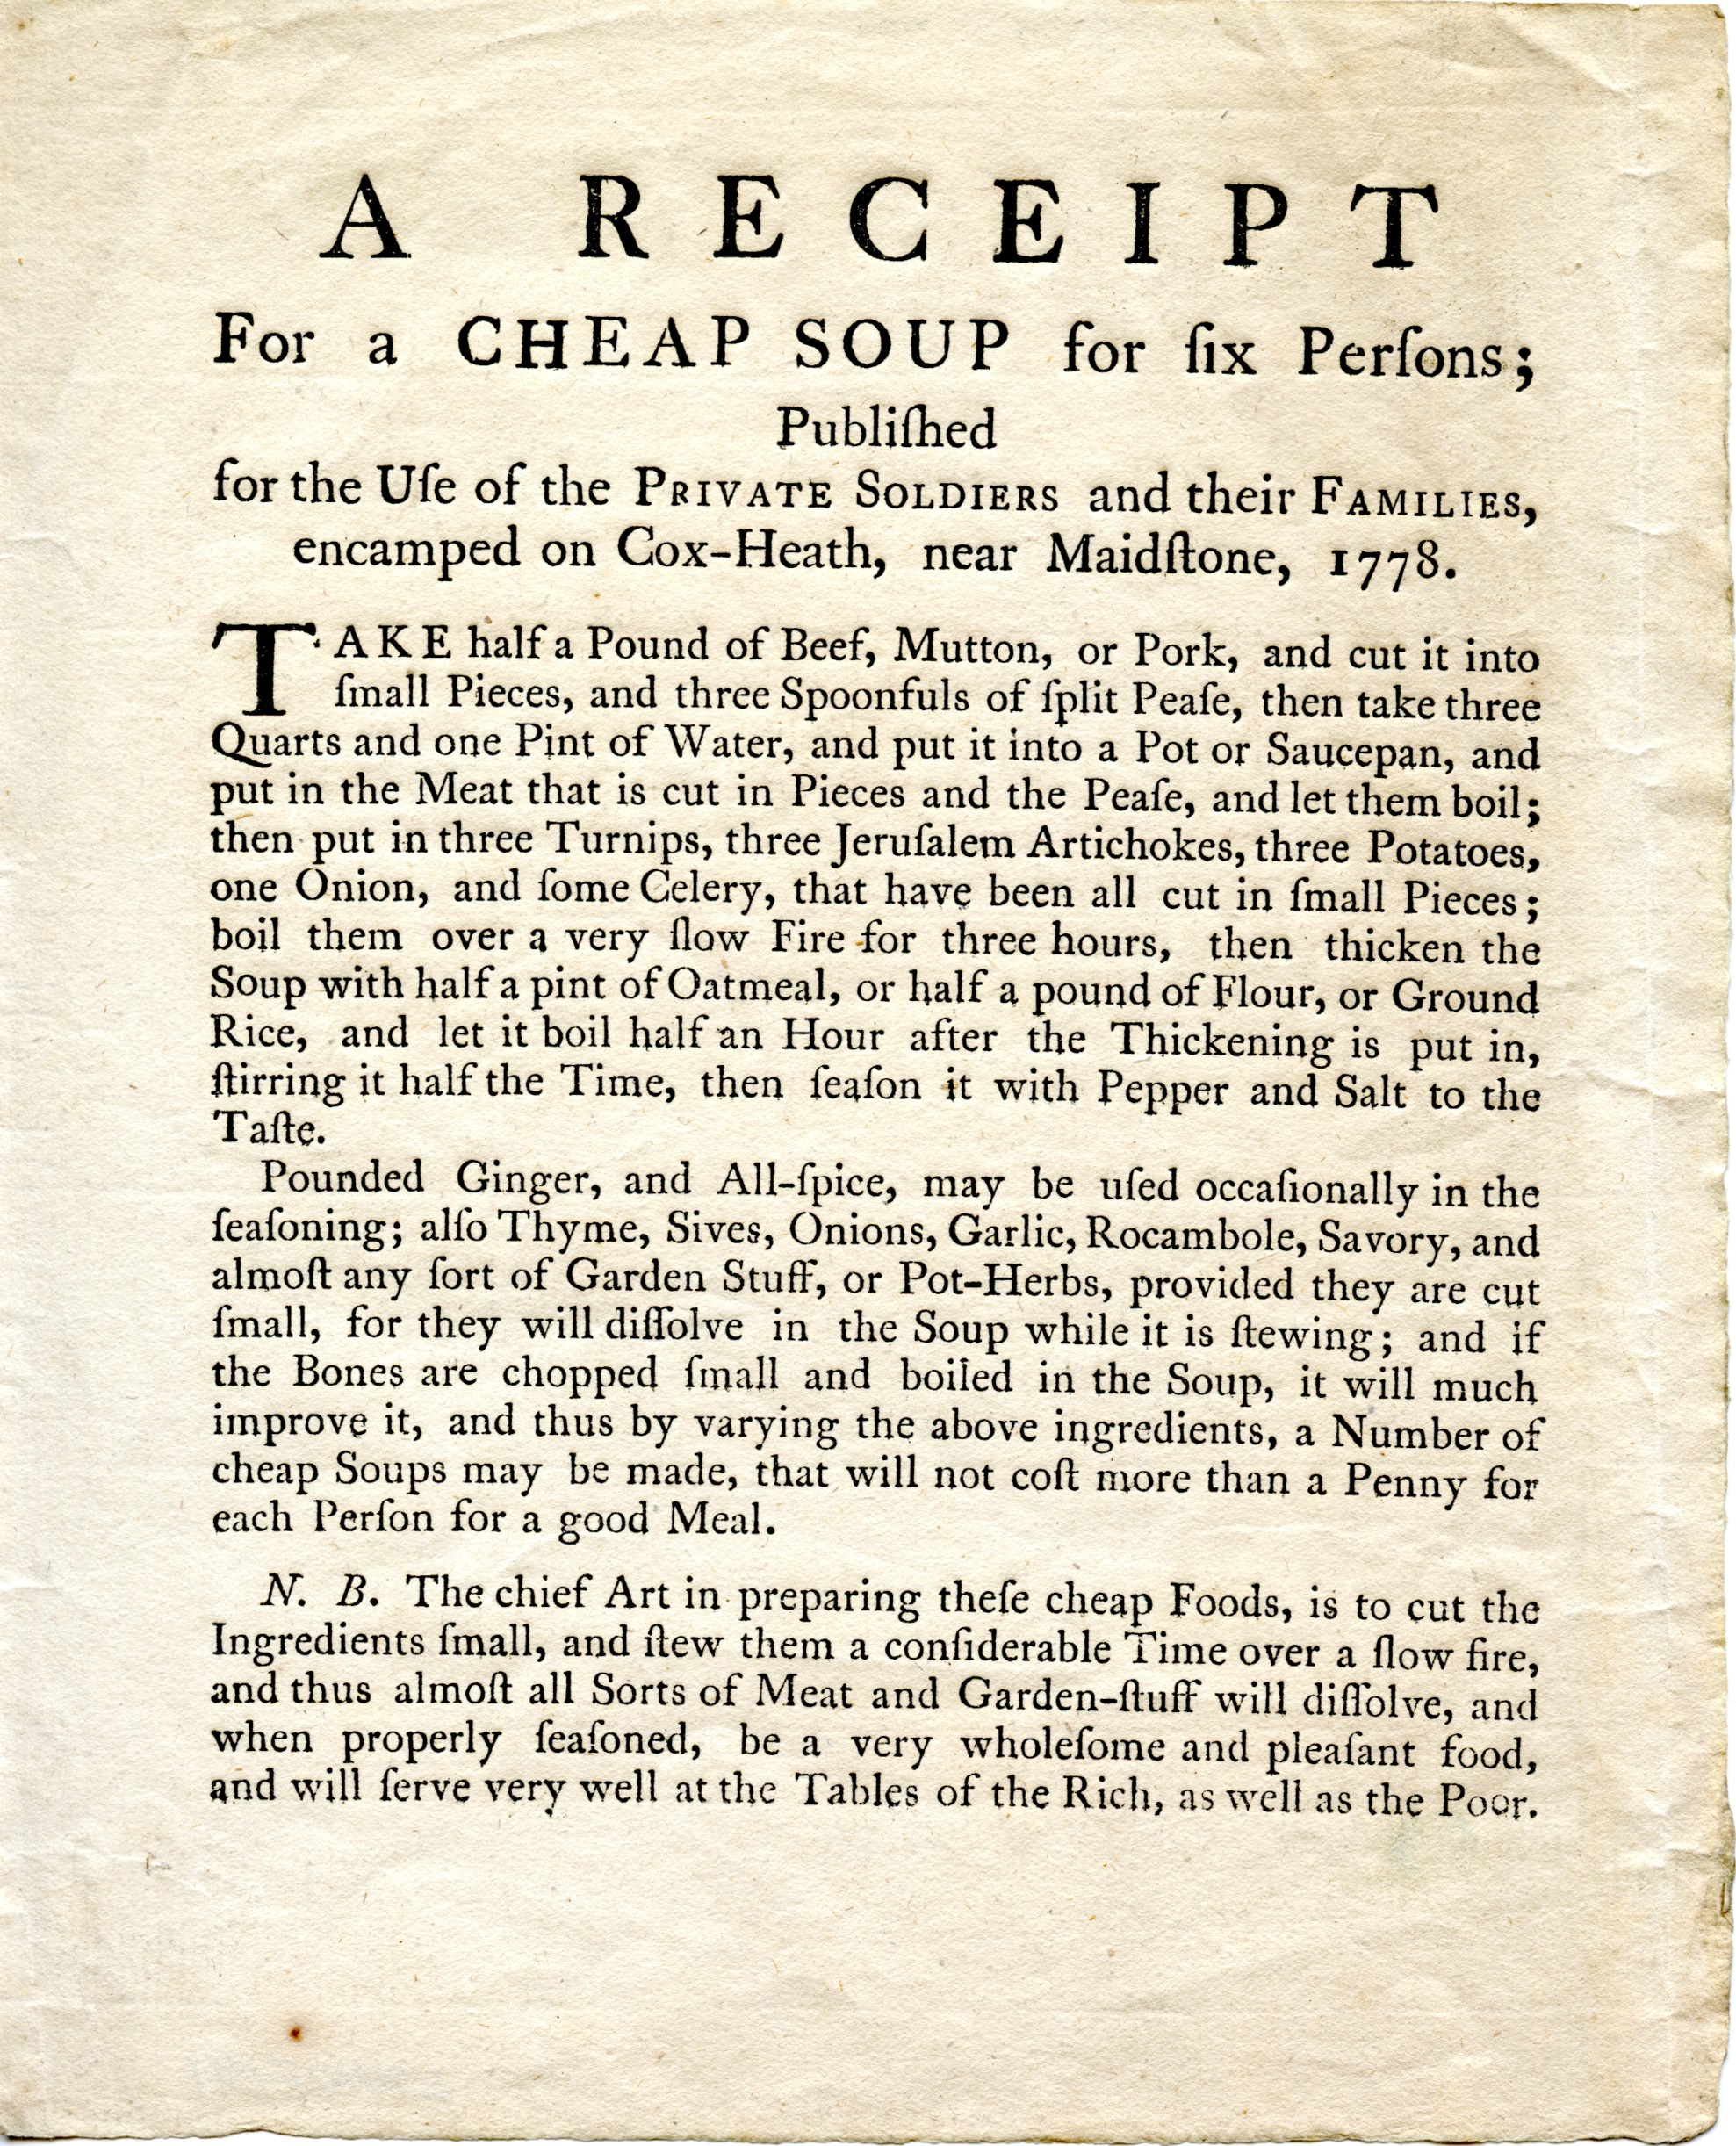 A Receipt for a Cheap Soup for Six Persons; Published for the Use of the Private Soldiers and Their Families, Encamped on Cox-Heath, near Maidstone, 1778, Thomas Shipley, [Maidstone, England, 1778]